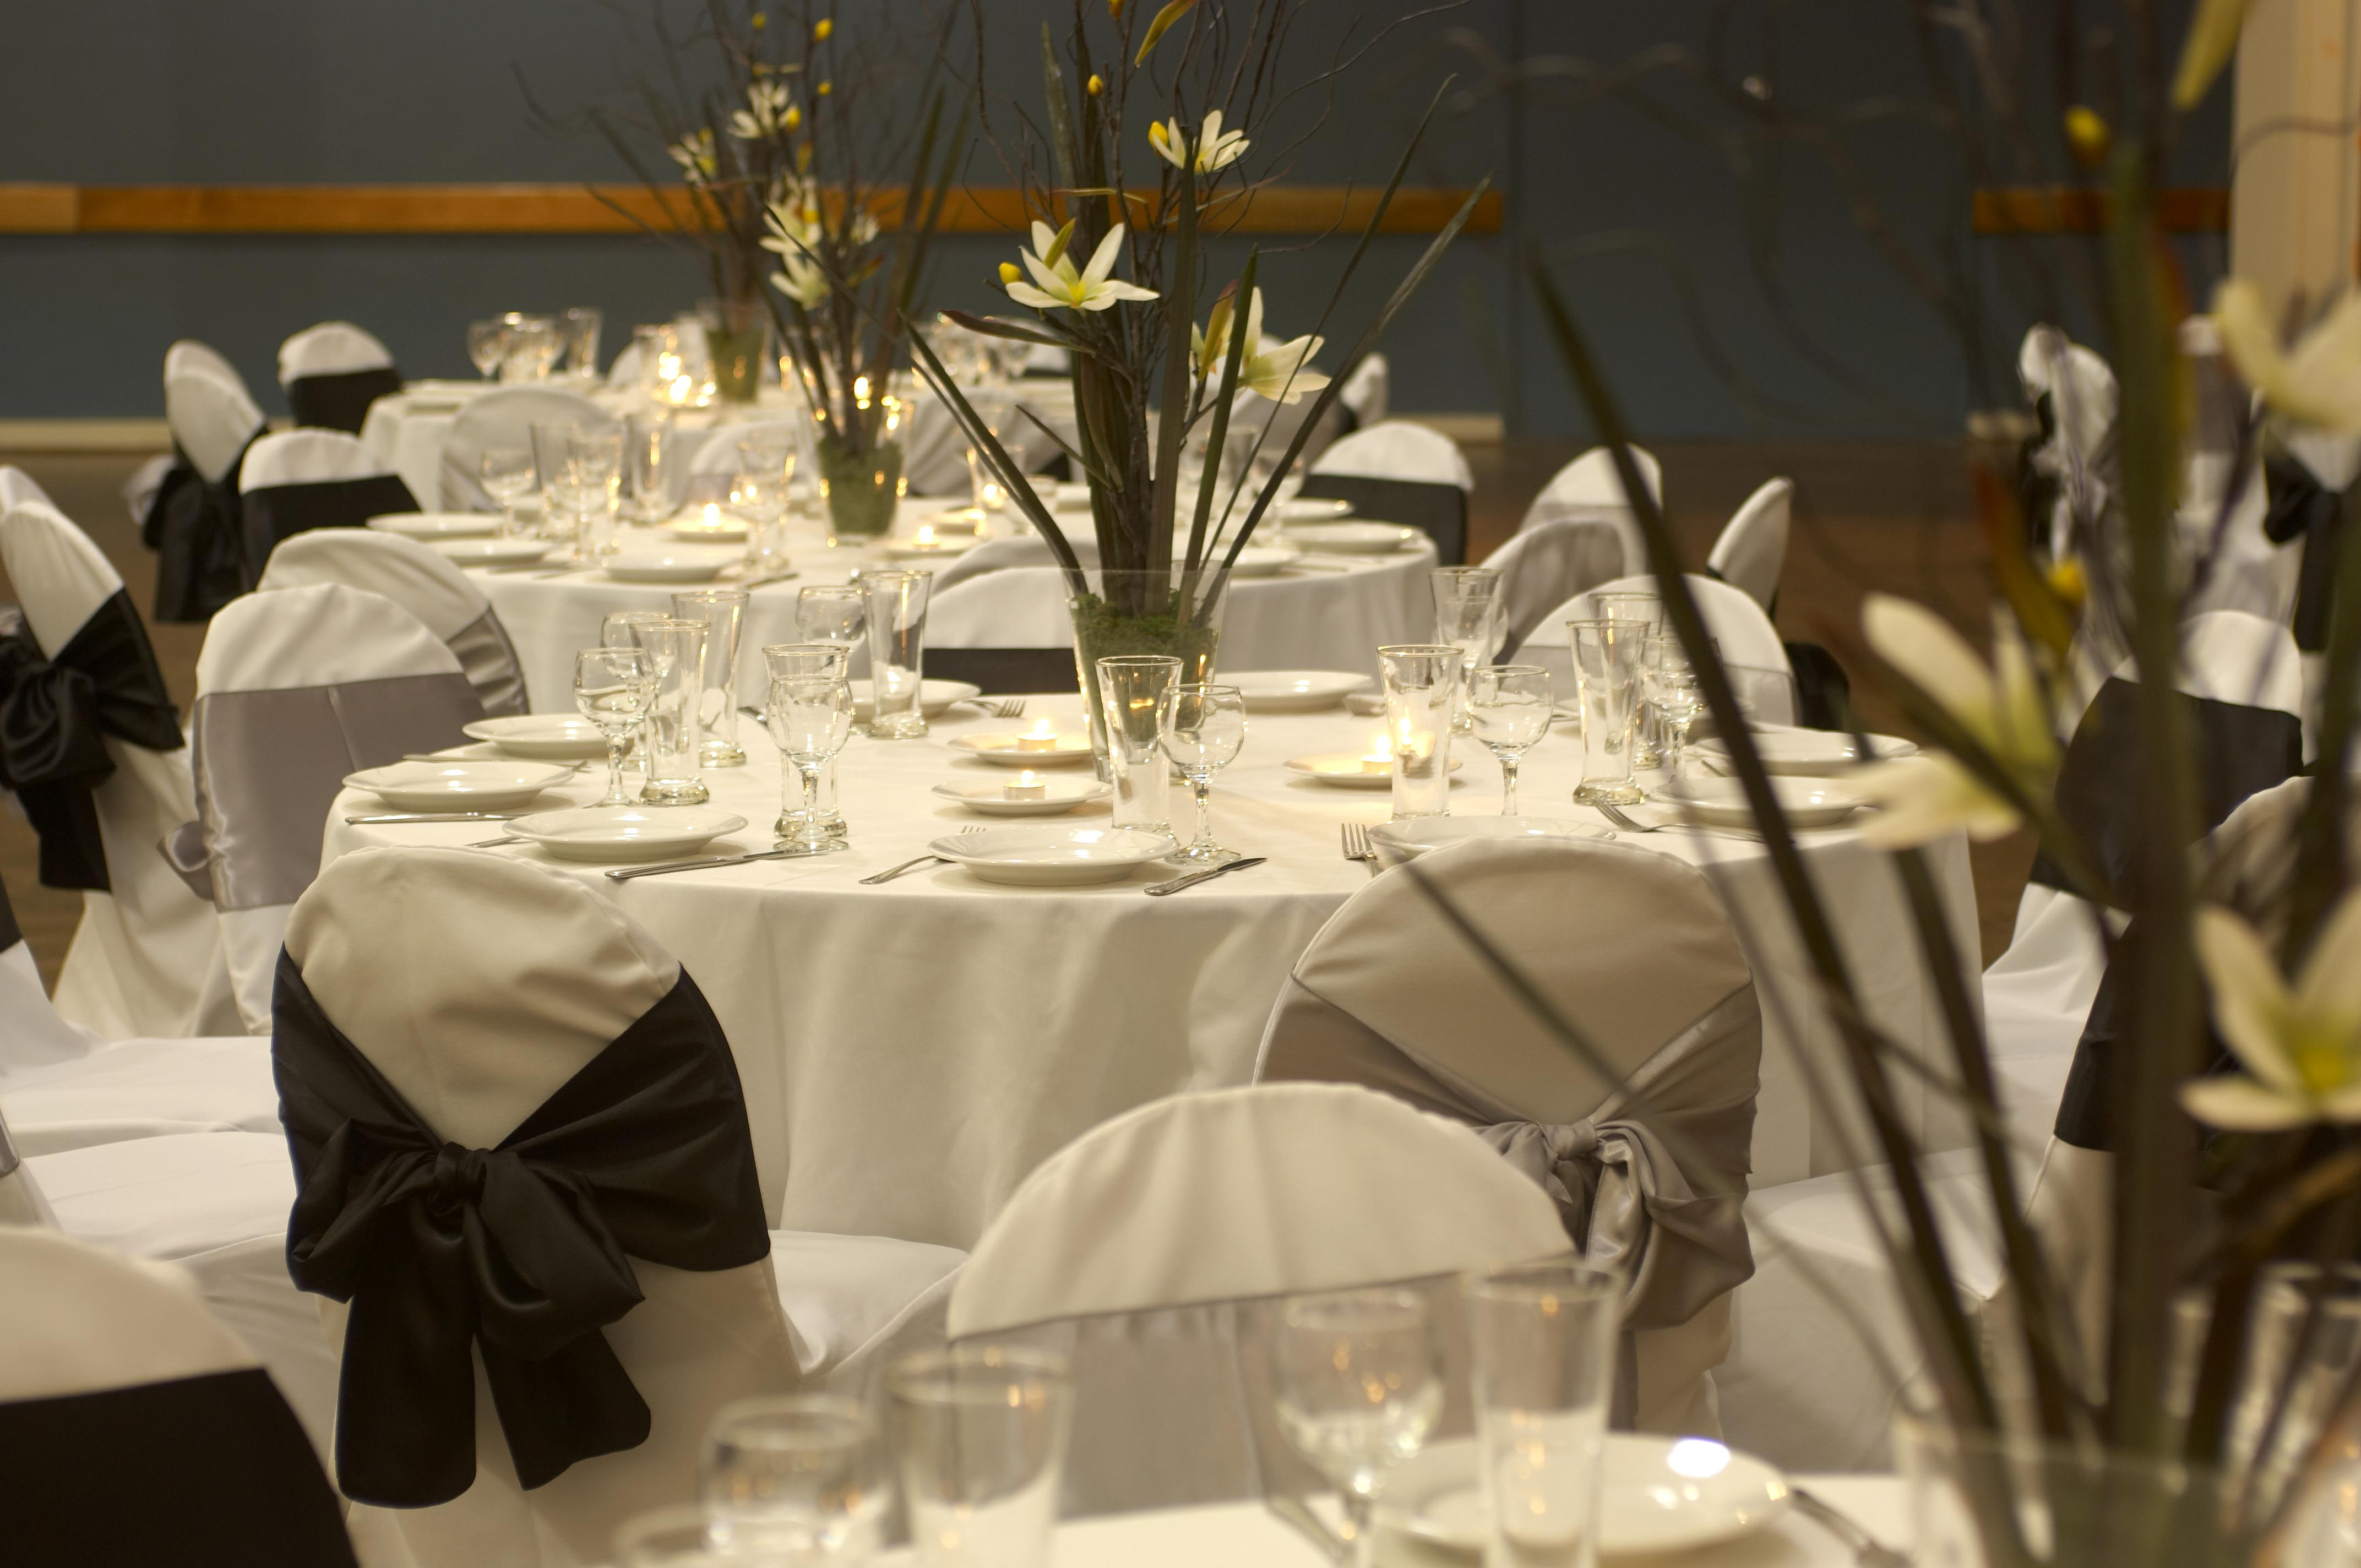 Banquet / Event Hall for Weddings and Parties in Fulton County